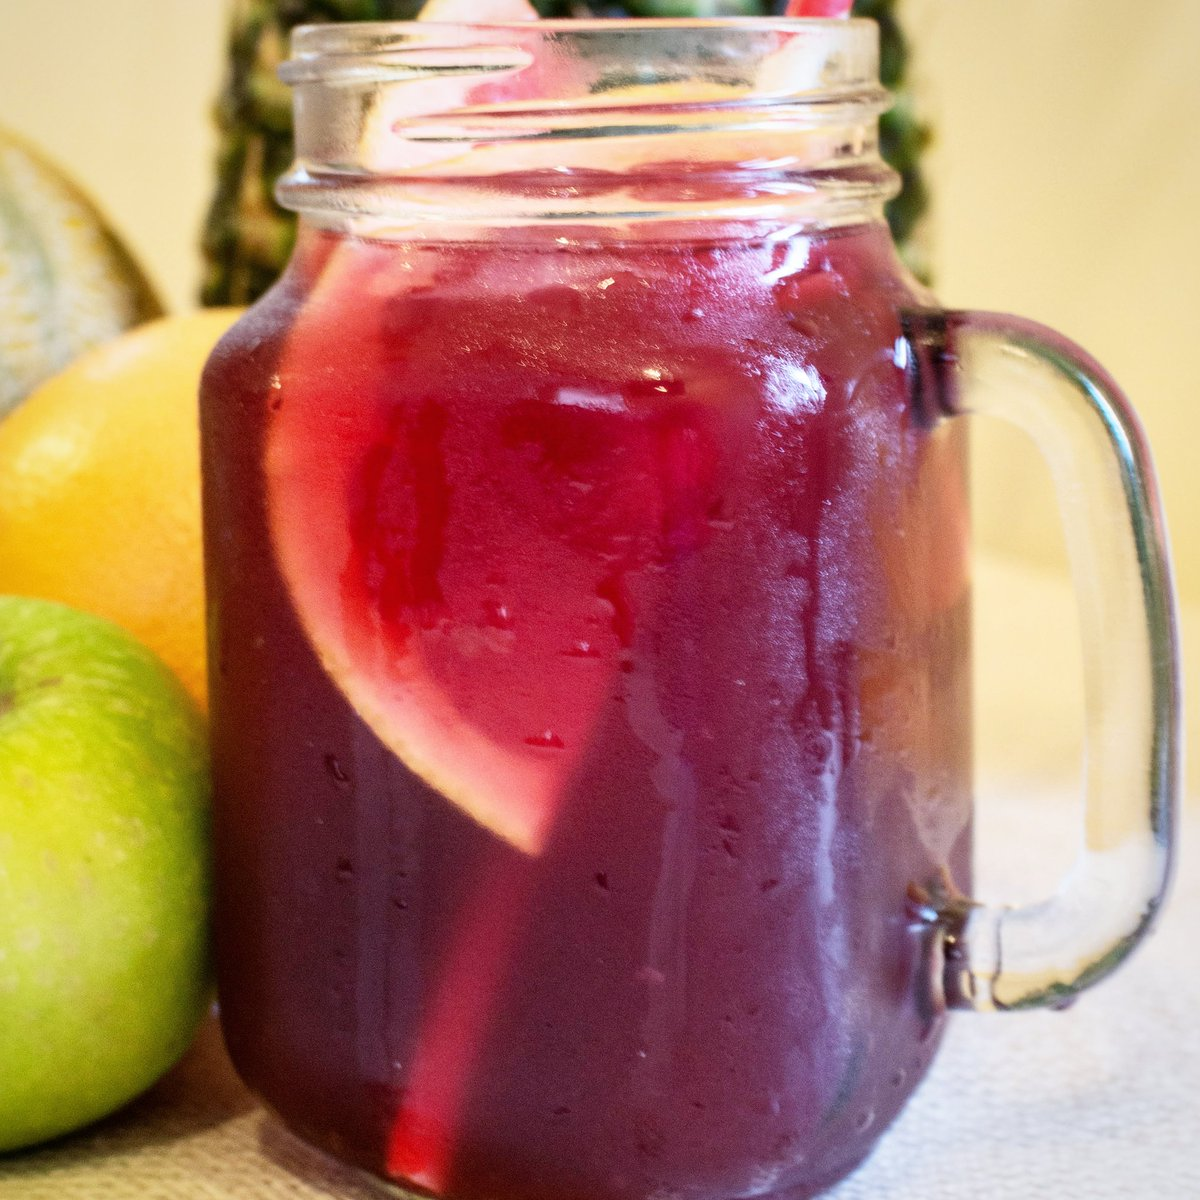 Calyx on twitter ice cold calyx wild apple hibiscus and ginger ice cold calyx wild apple hibiscus and ginger with a slice of pink grapefruit perfection gowildandshine handcrafted vegan veganlife flowers izmirmasajfo